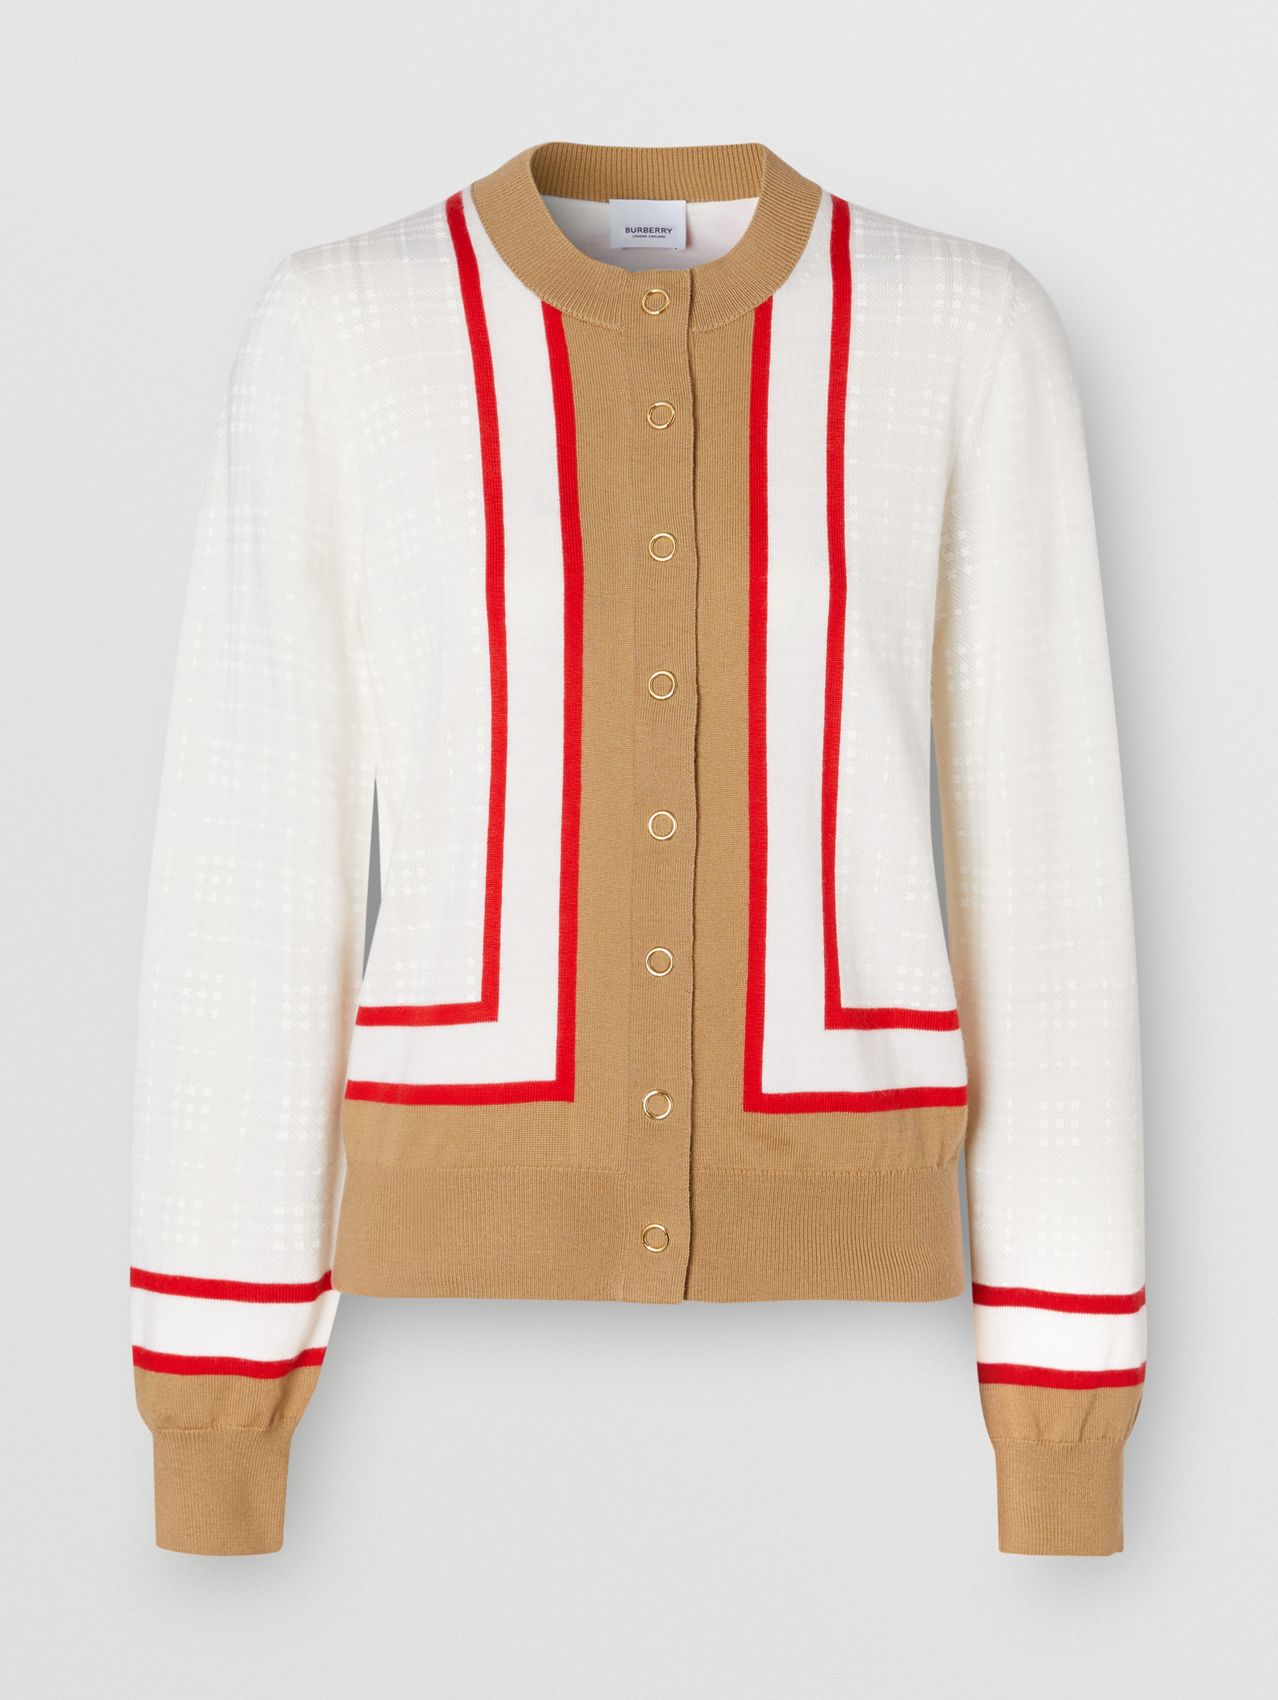 Archive Society Intarsia Wool Cardigan